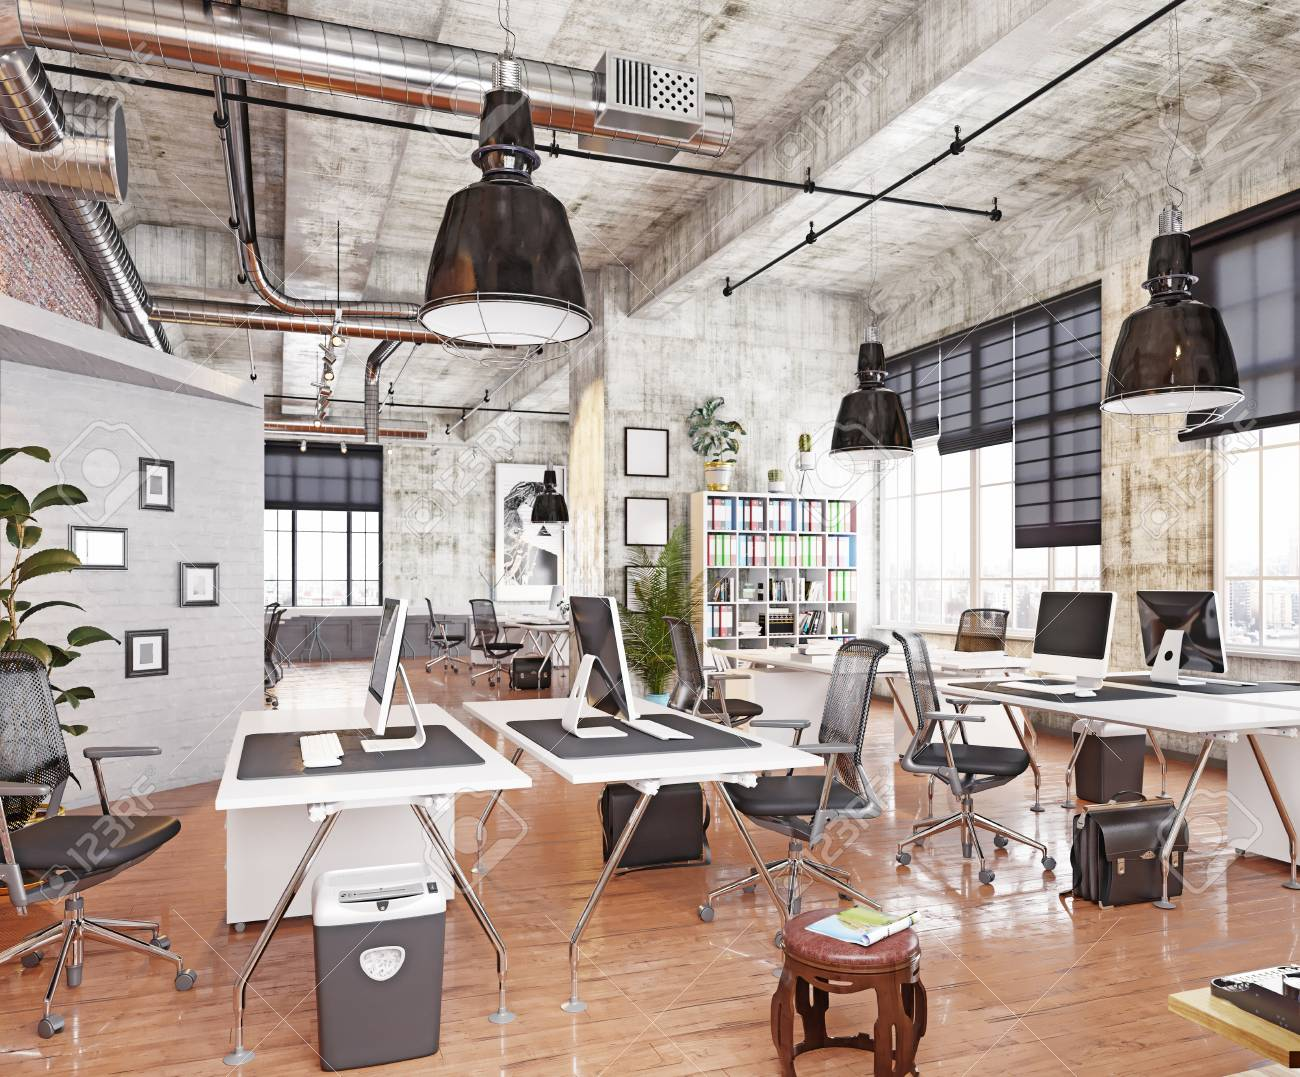 Loft office Modern Modern Coworking Loft Office 3d Rendering Concept Stock Photo 101766226 123rfcom Modern Coworking Loft Office 3d Rendering Concept Stock Photo